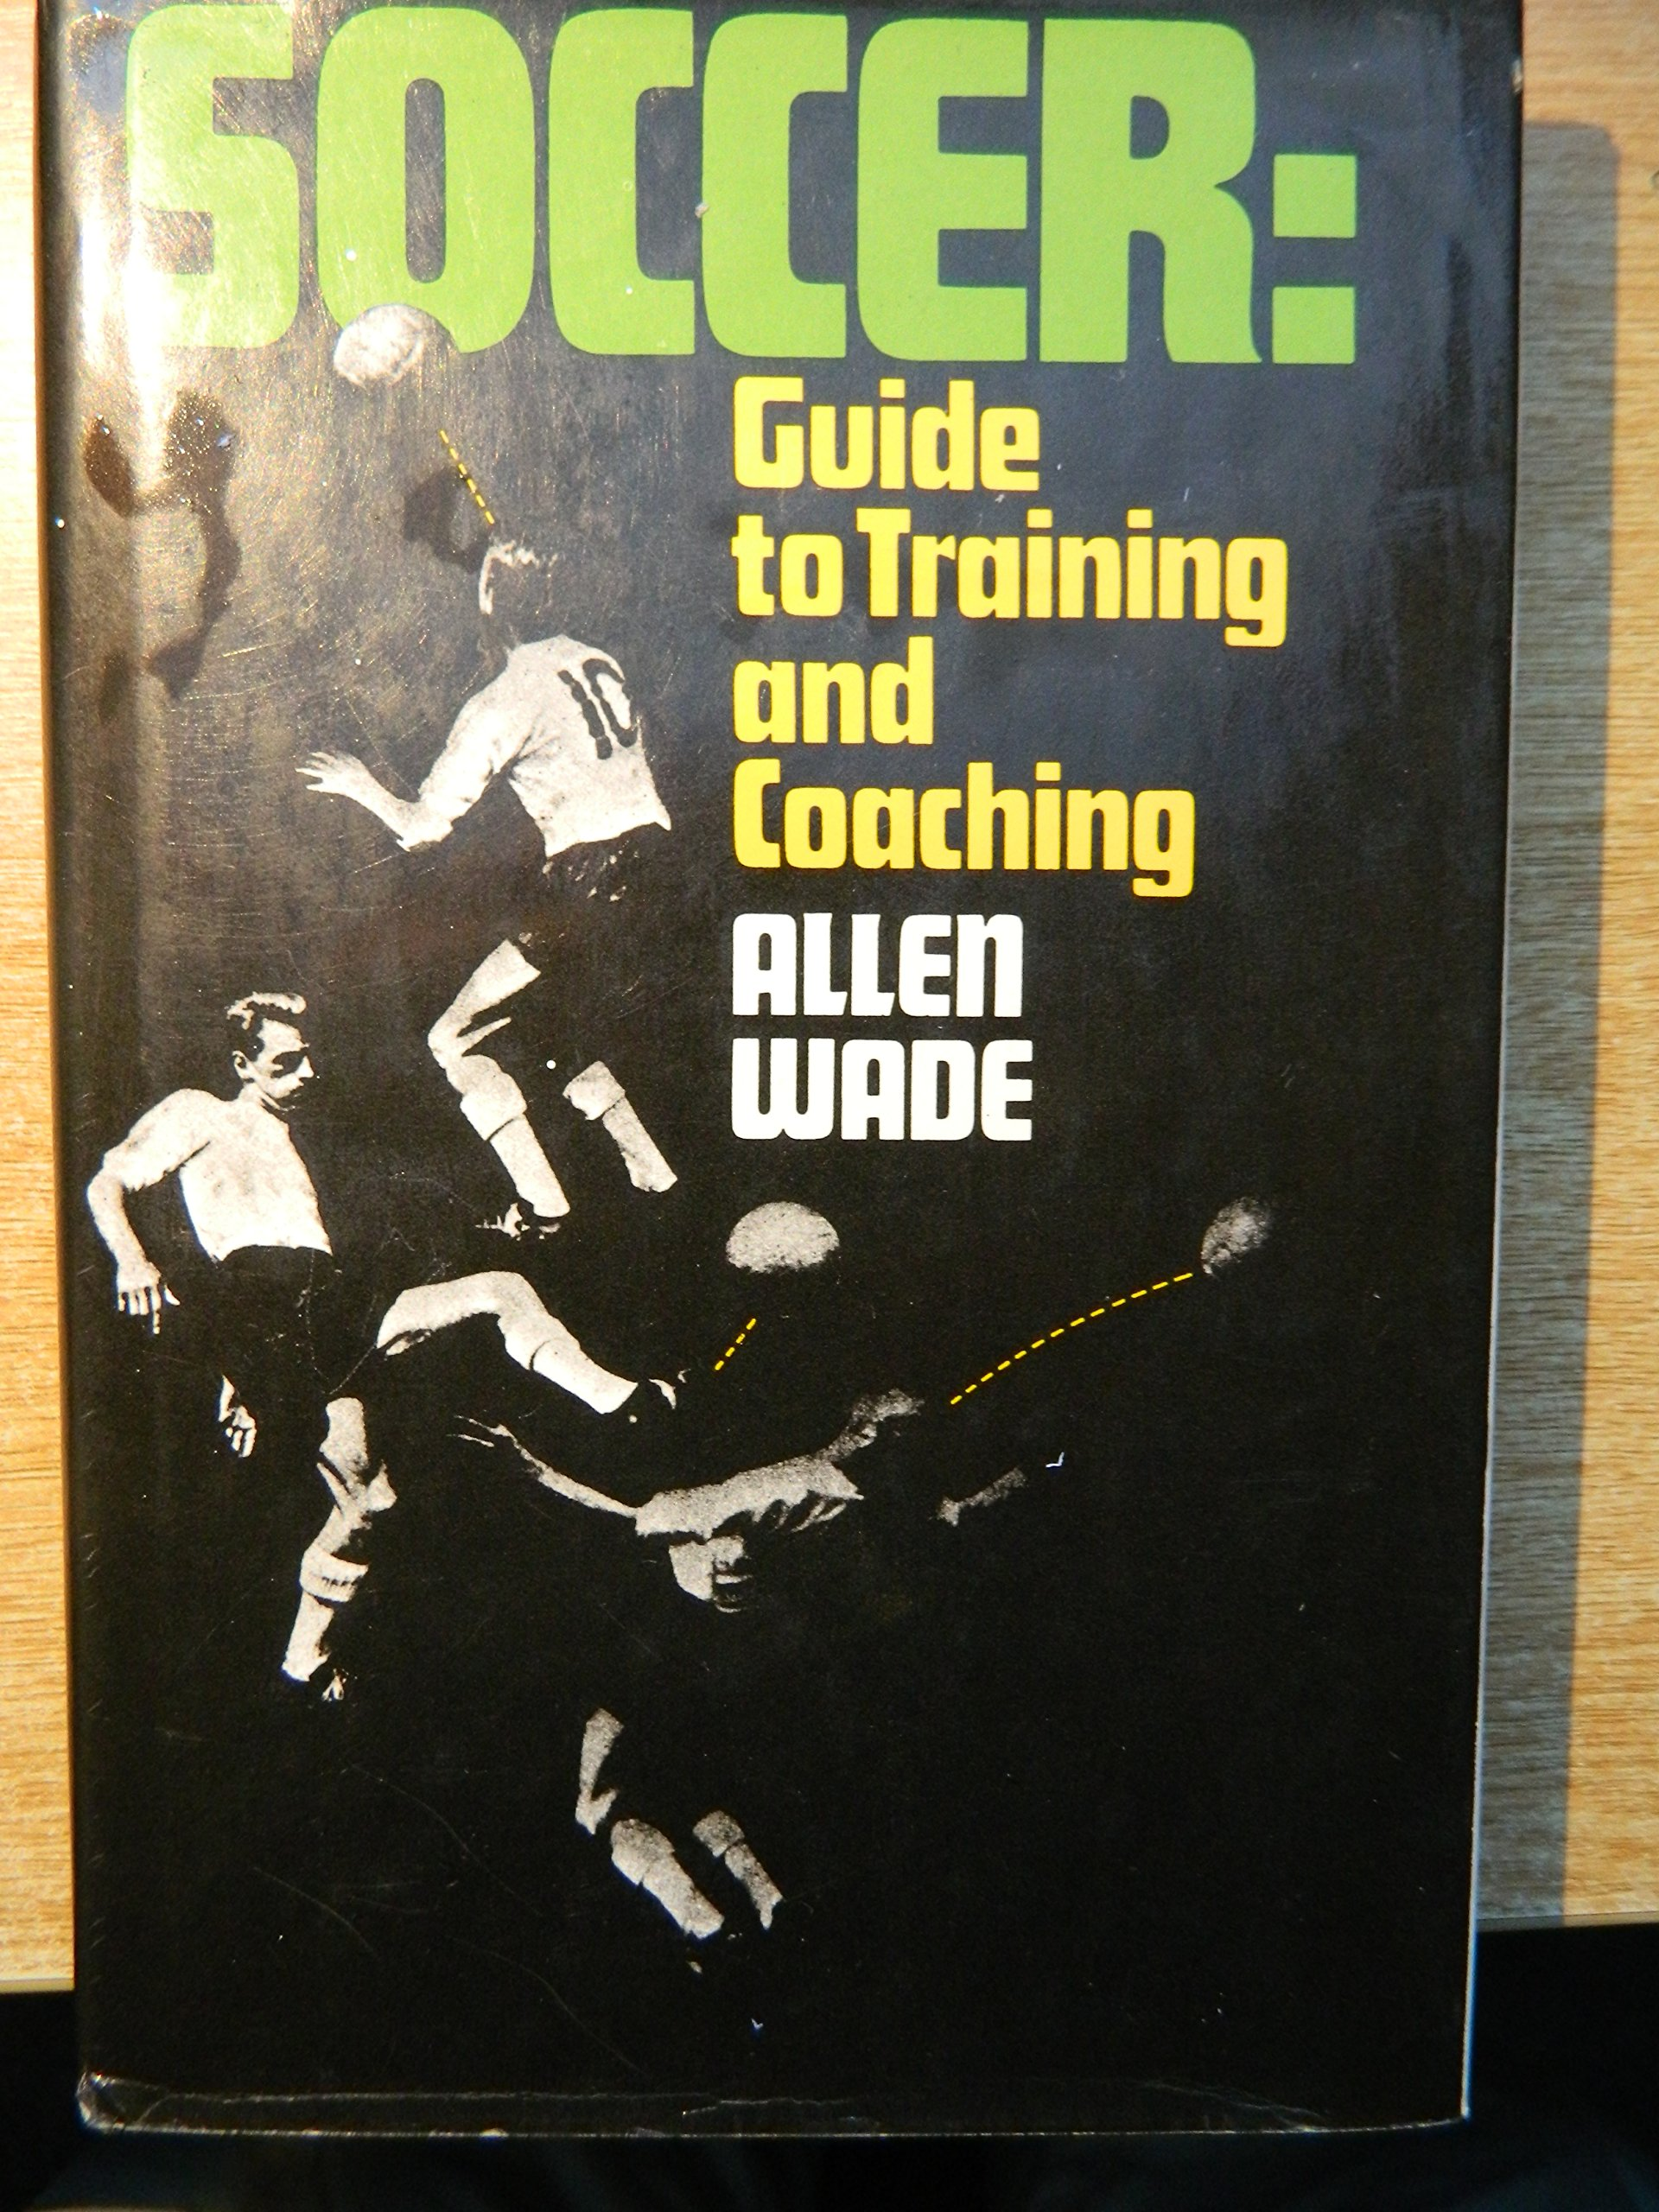 Soccer: Guide to Training and Coaching.